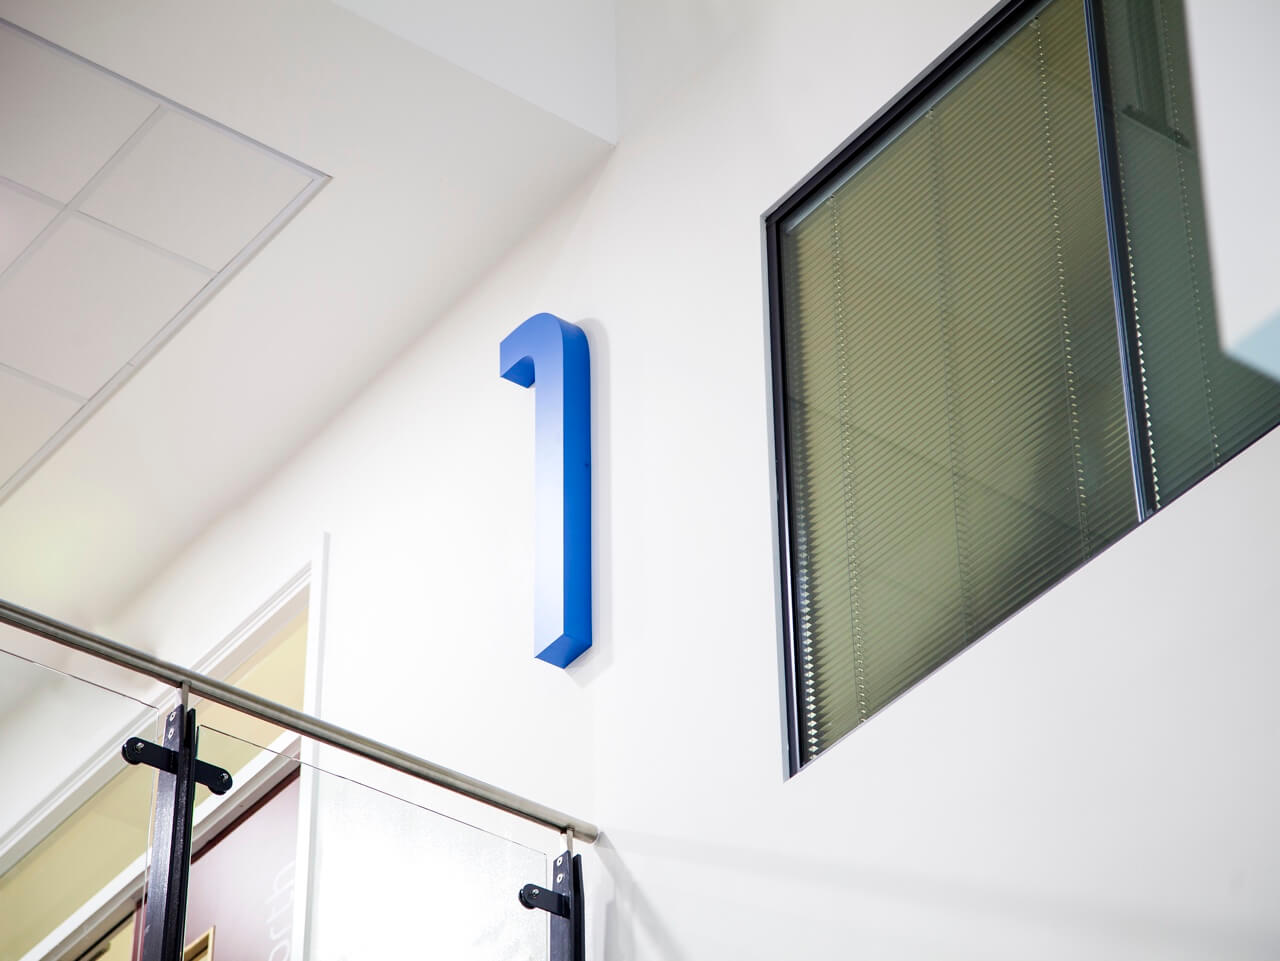 3D signage and wayfinding at Rochdale College